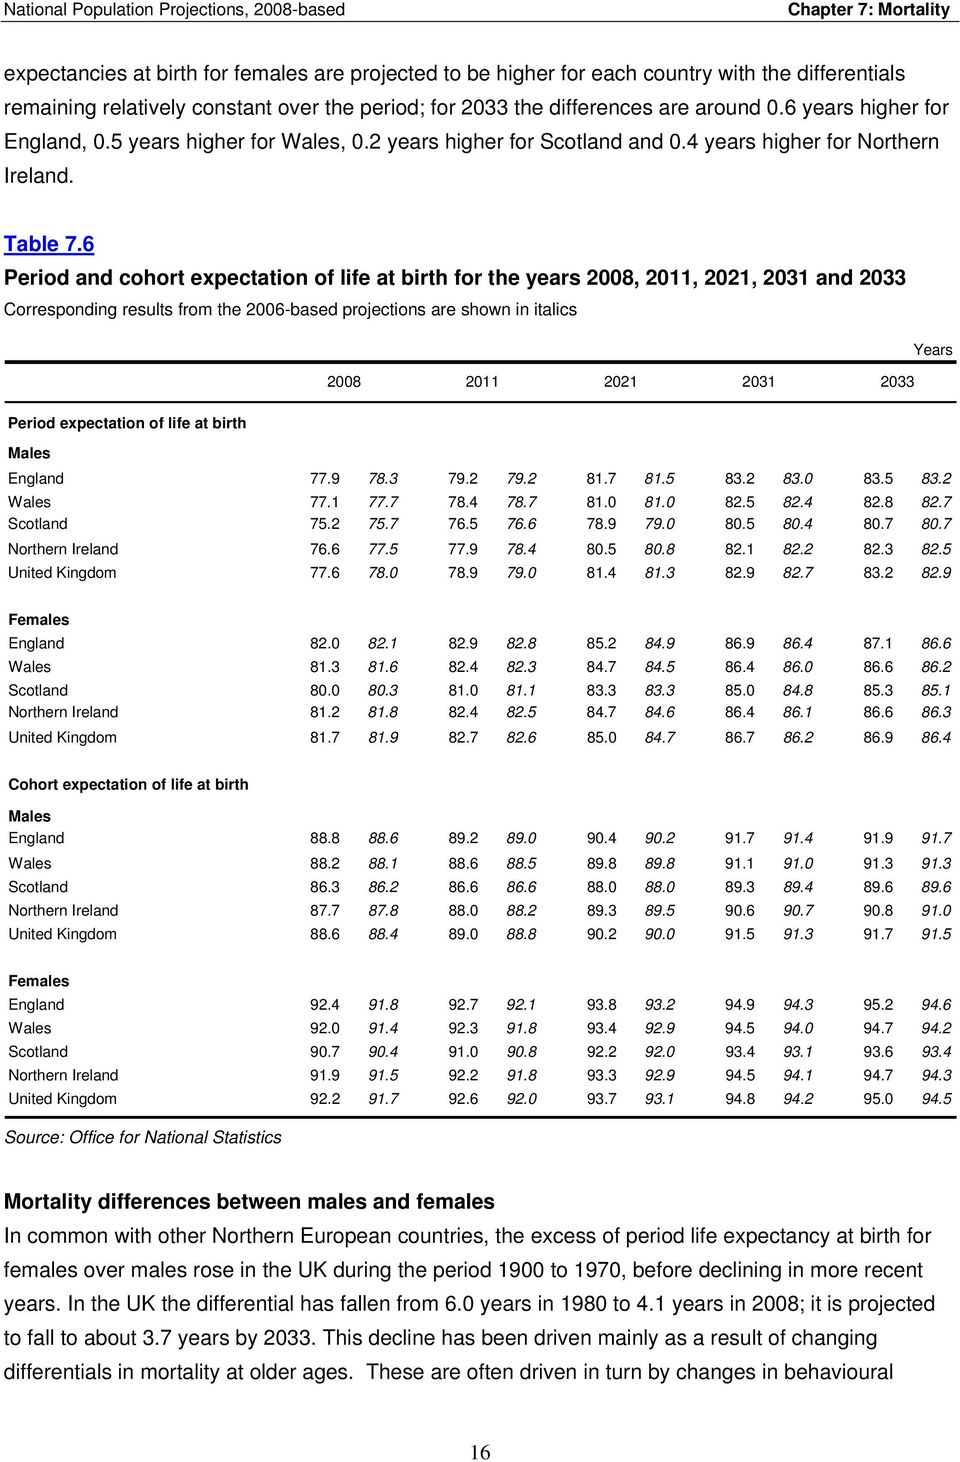 6 Period and cohort expectation of life at birth for the years 2008, 2011, 2021, 2031 and 2033 Corresponding results from the 2006-based projections are shown in italics 2008 2011 2021 2031 2033